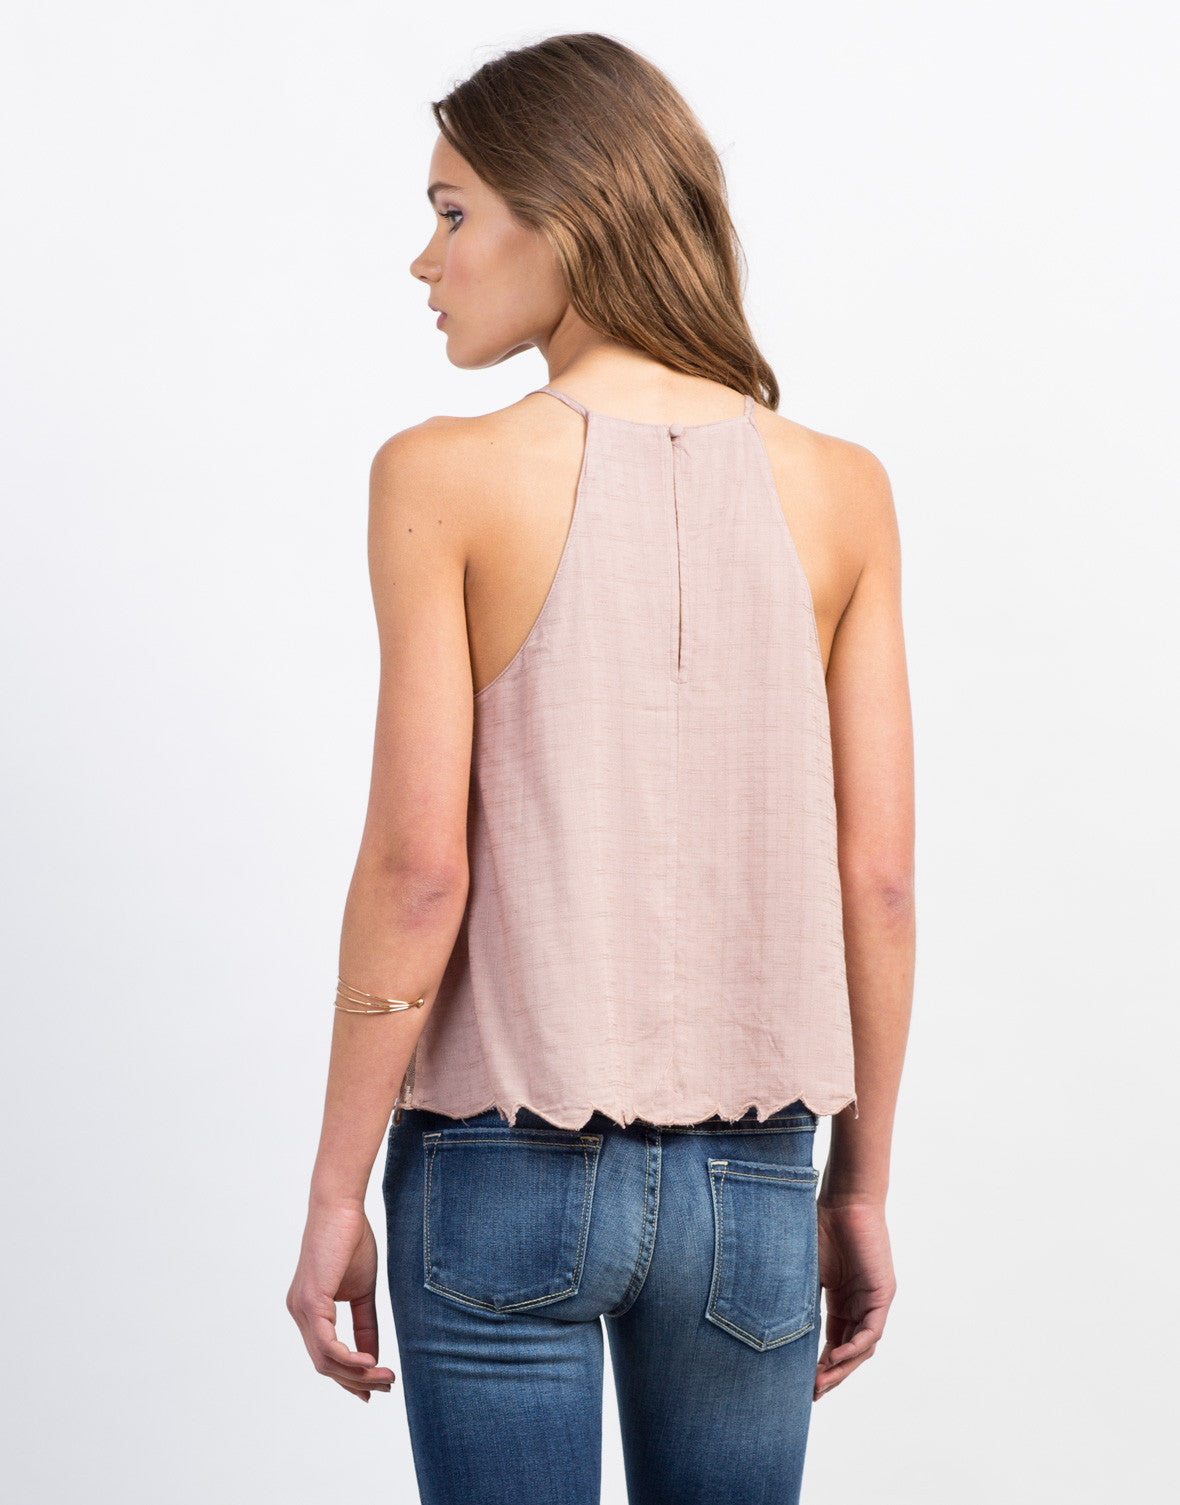 Back View of Stitched Lace Cami Top